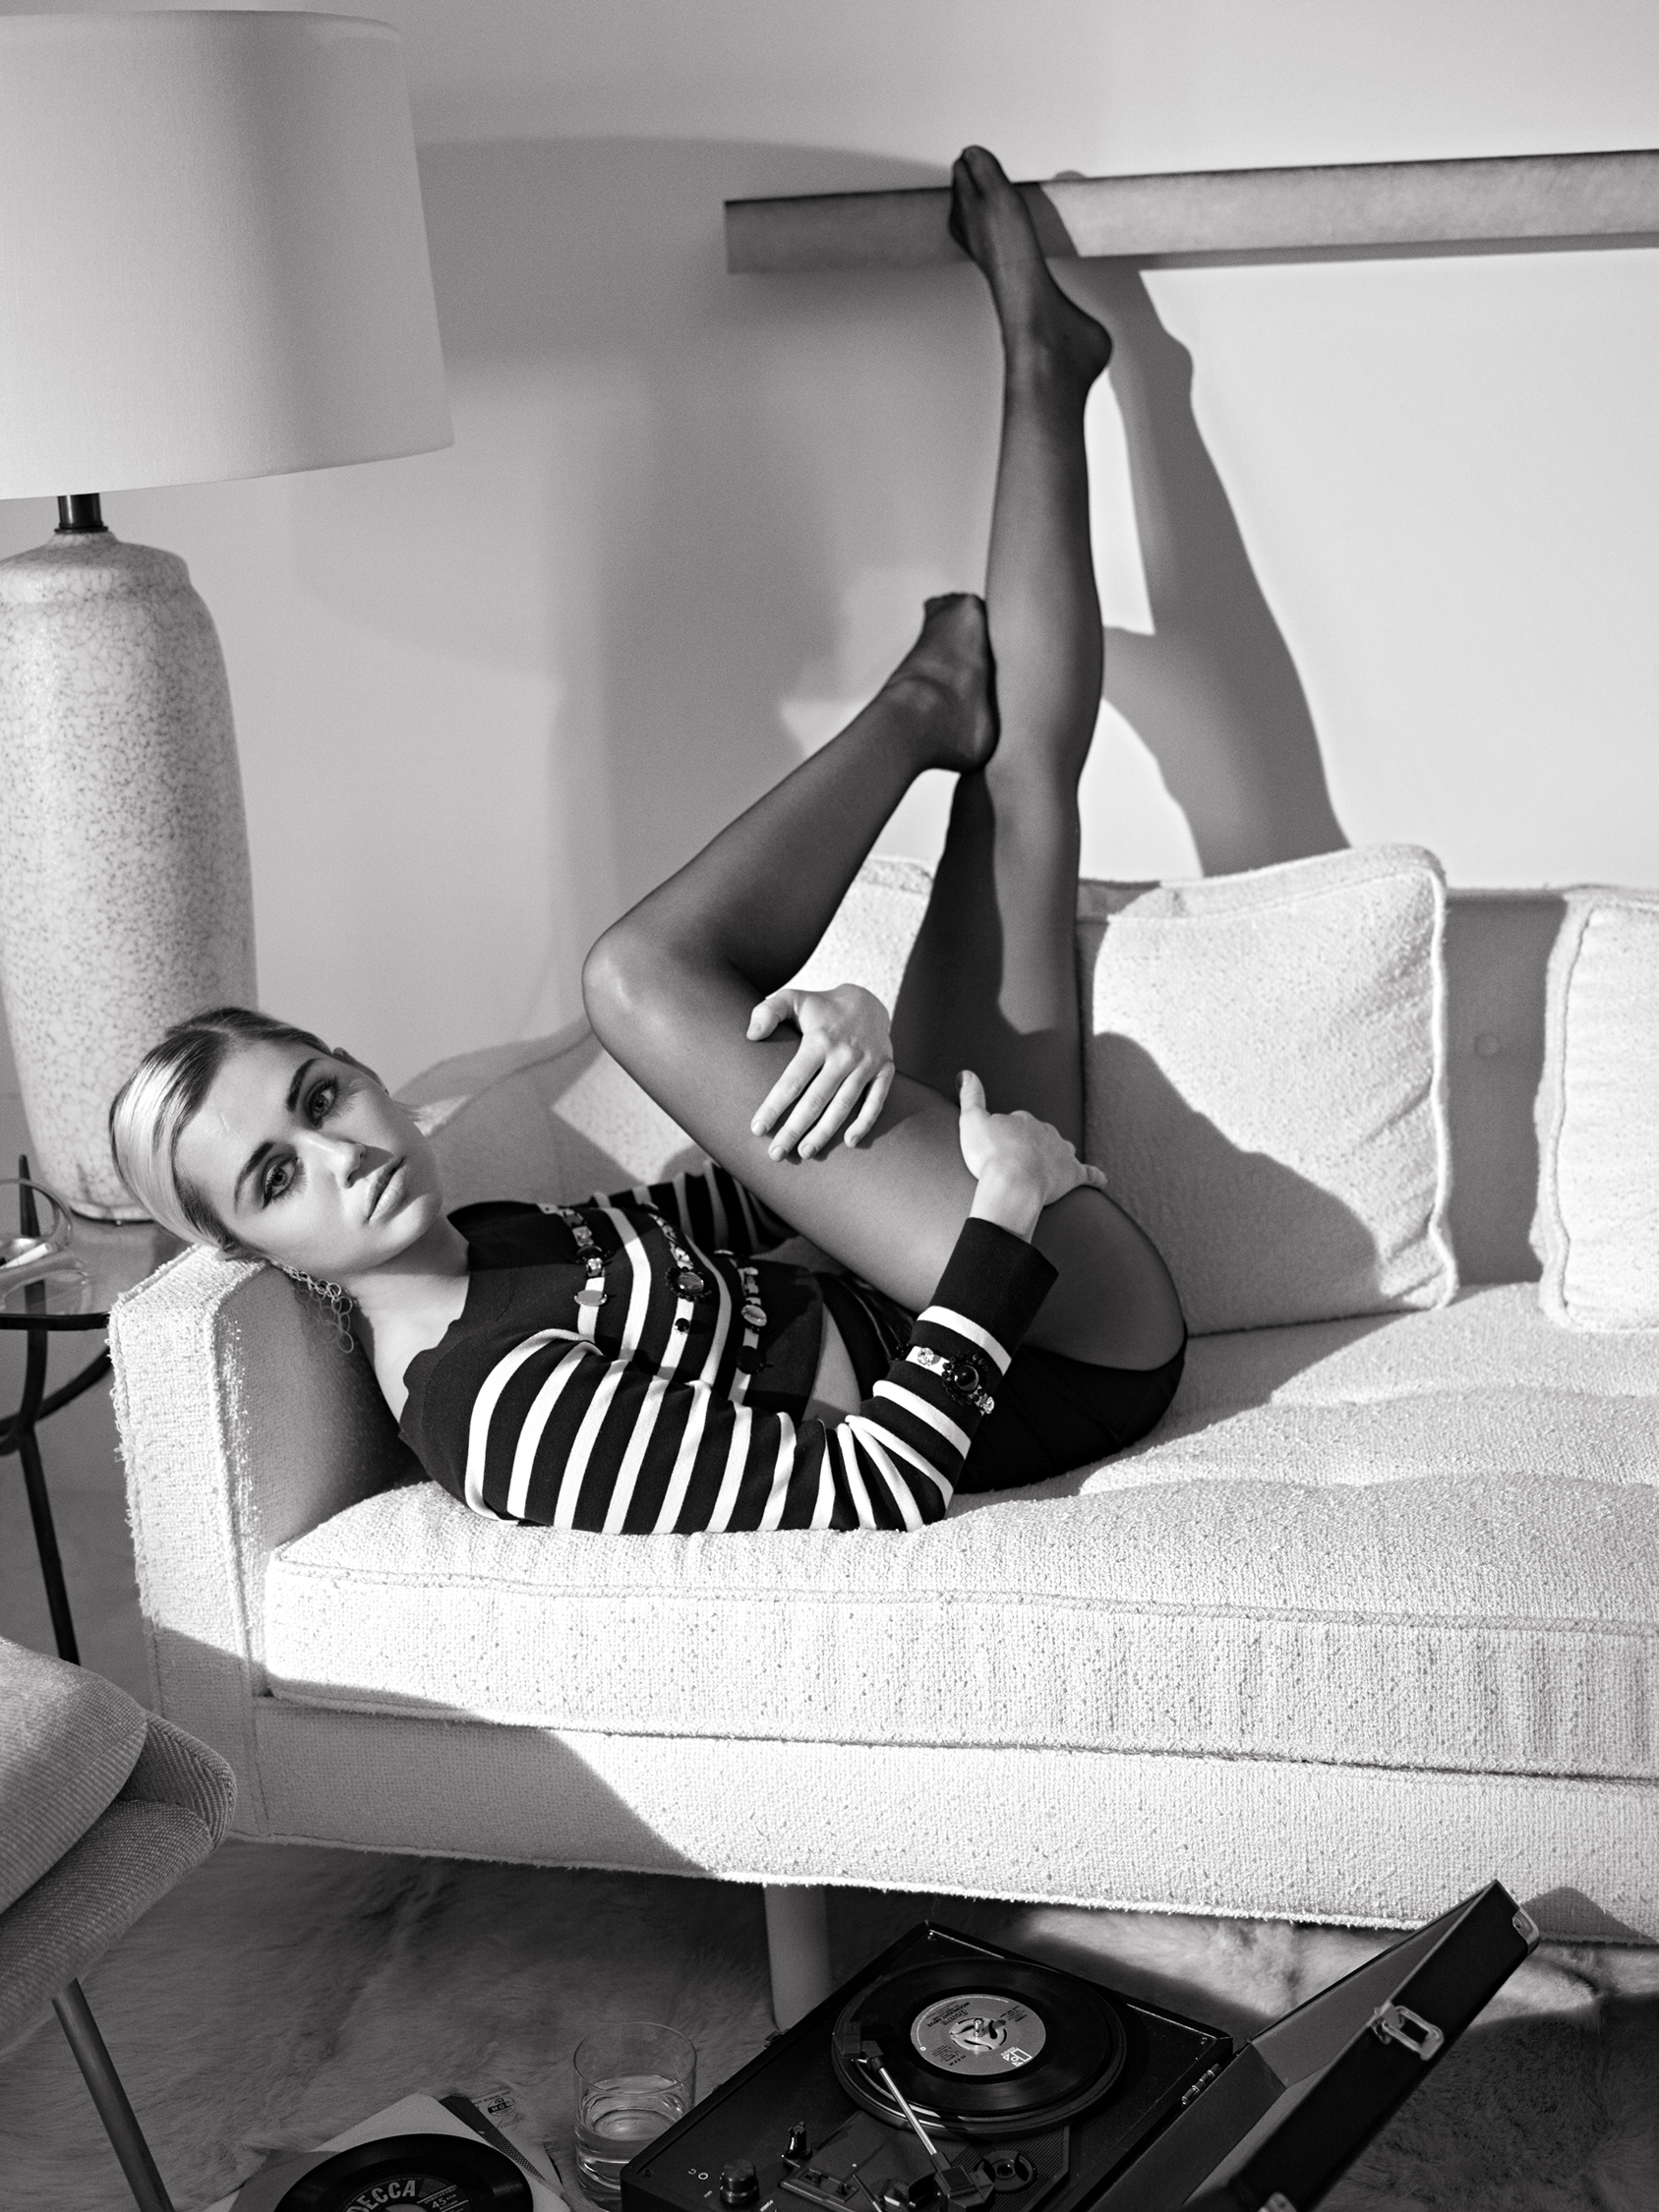 Seliger_Marie_Claire_Miley_Cyrus6.jpg